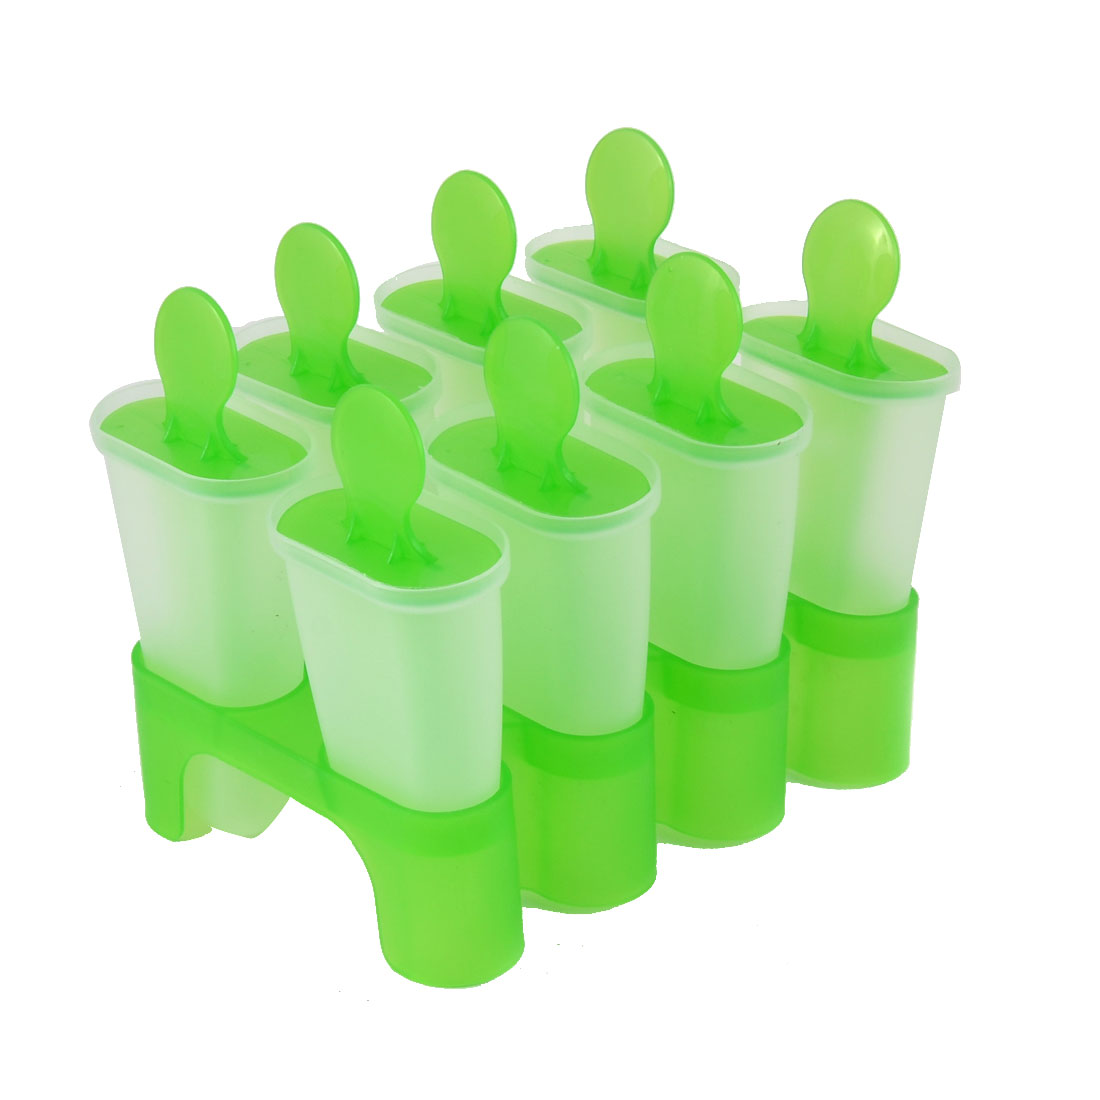 Plastic 8 Compartments Home DIY Ice Cream Popsicle Making Tray Green Clear